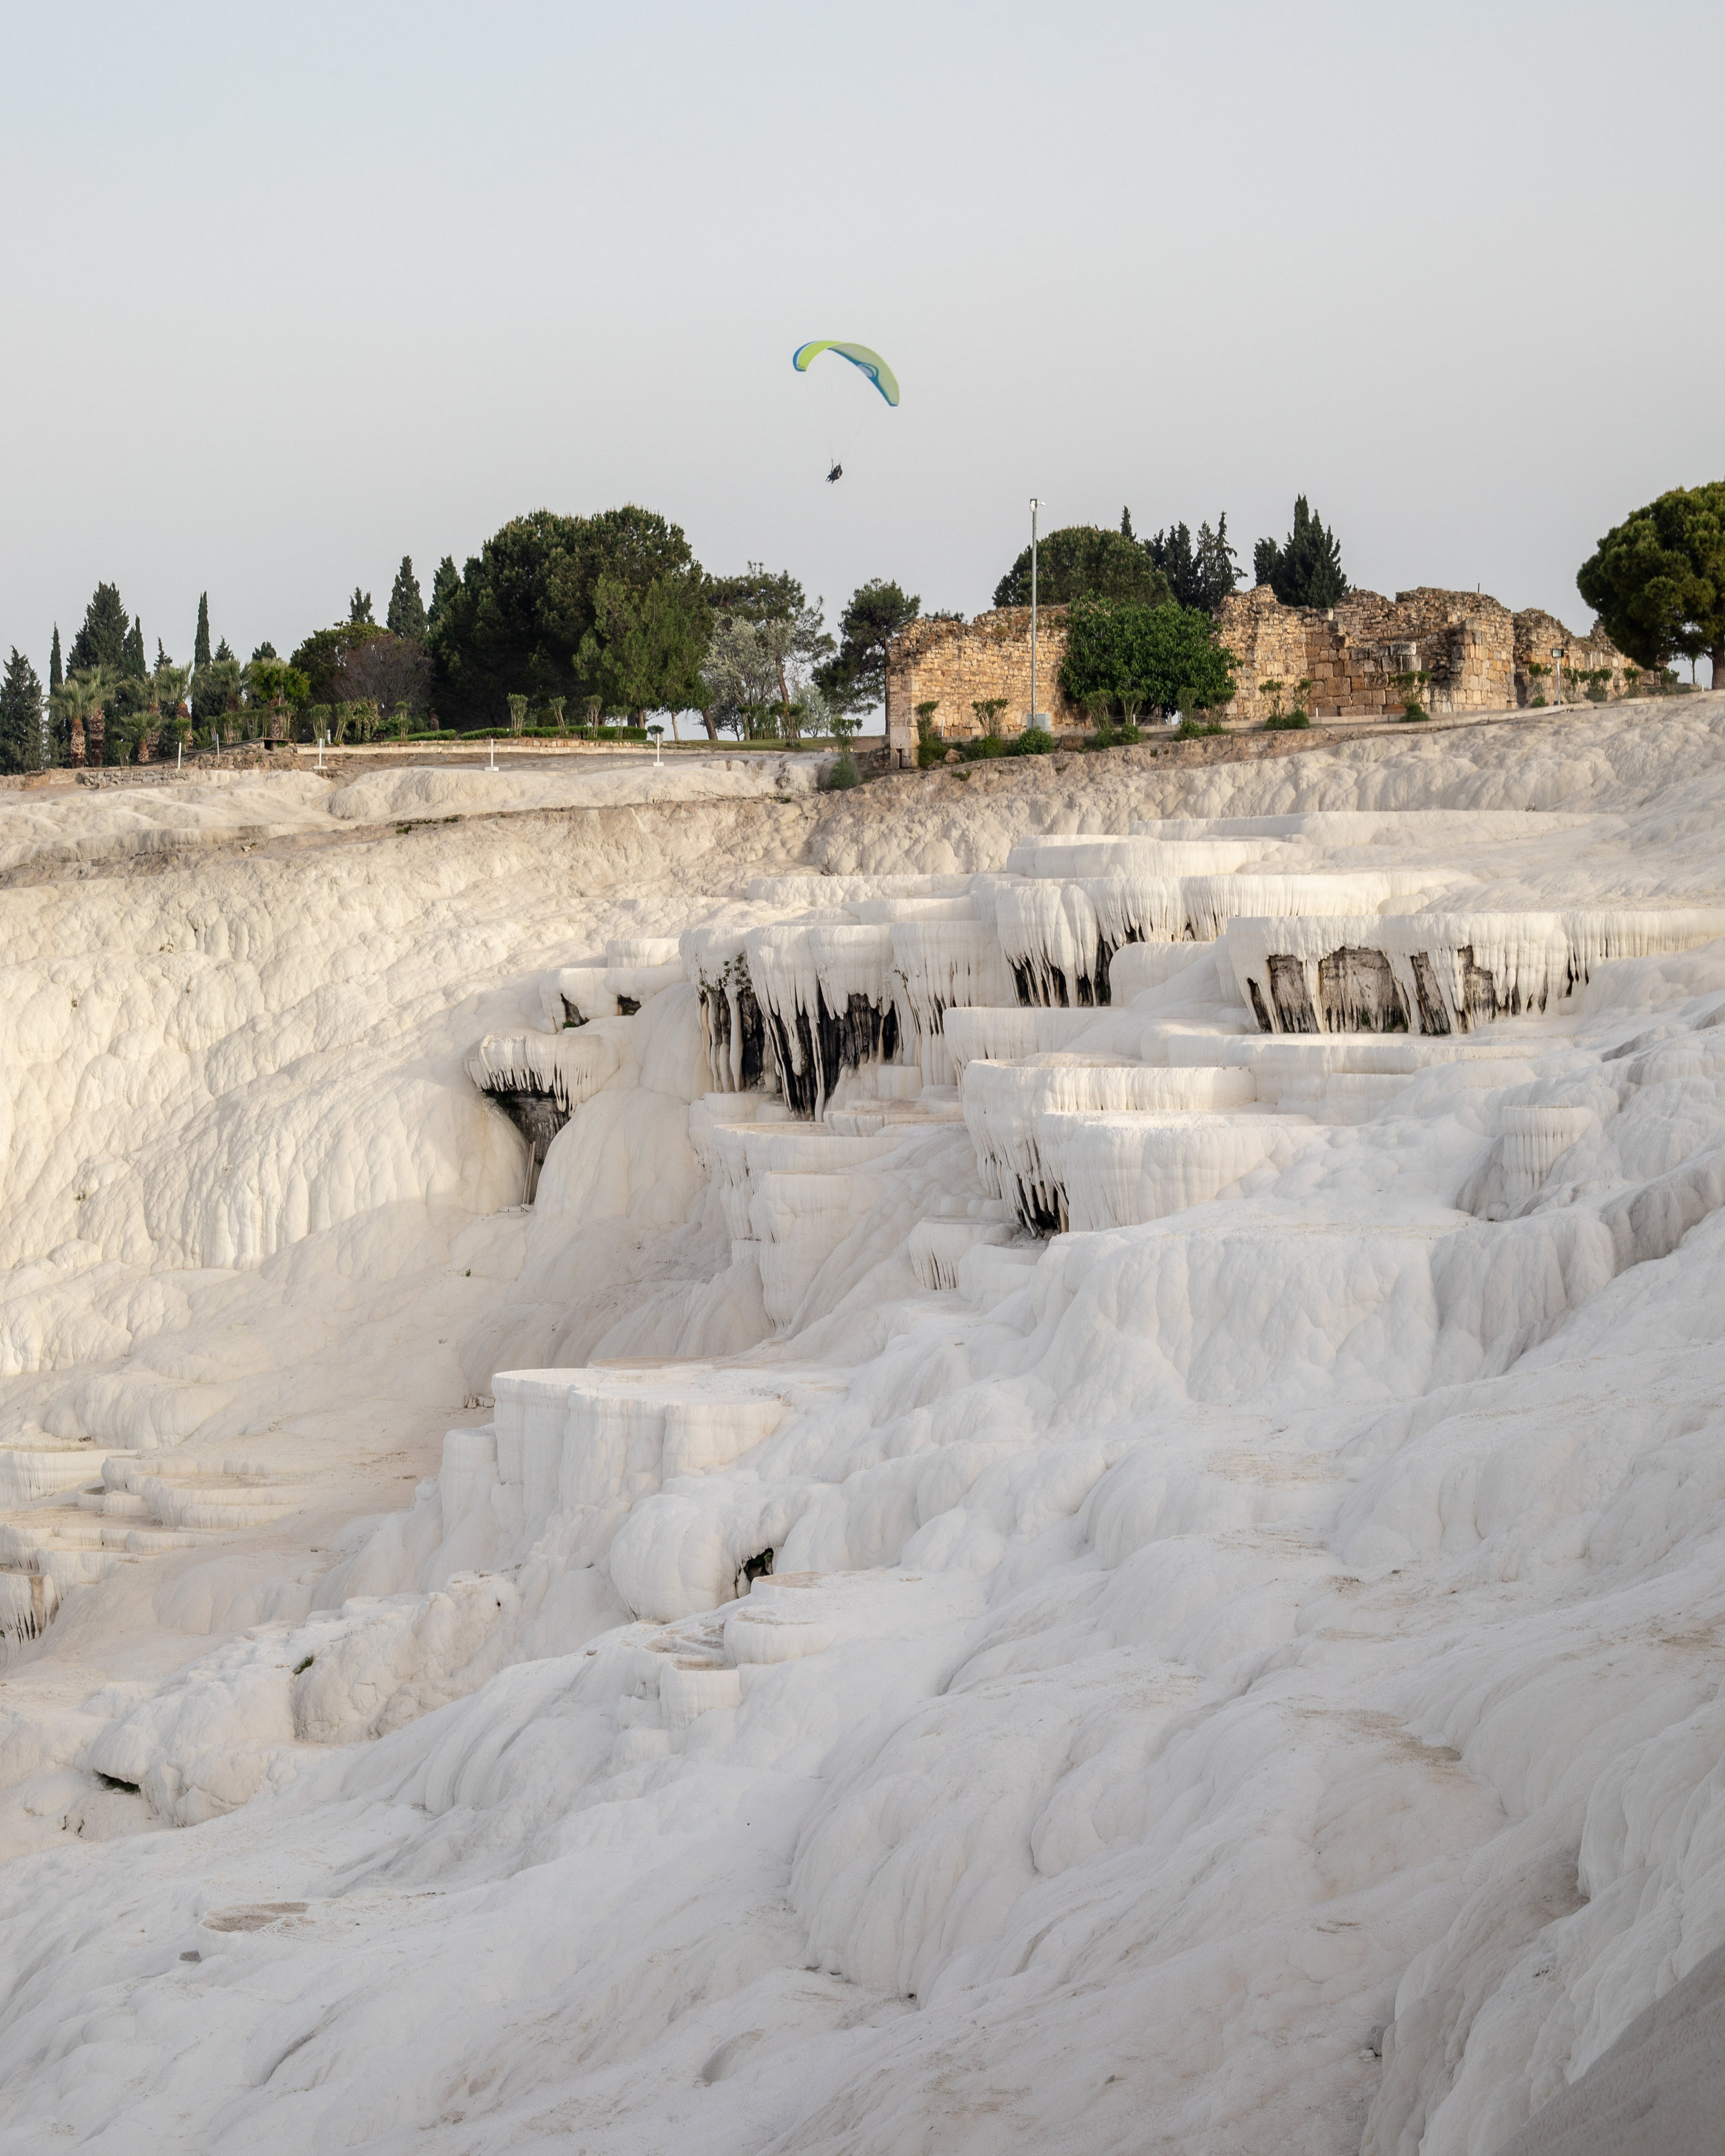 The dry travertines of Pamukkale